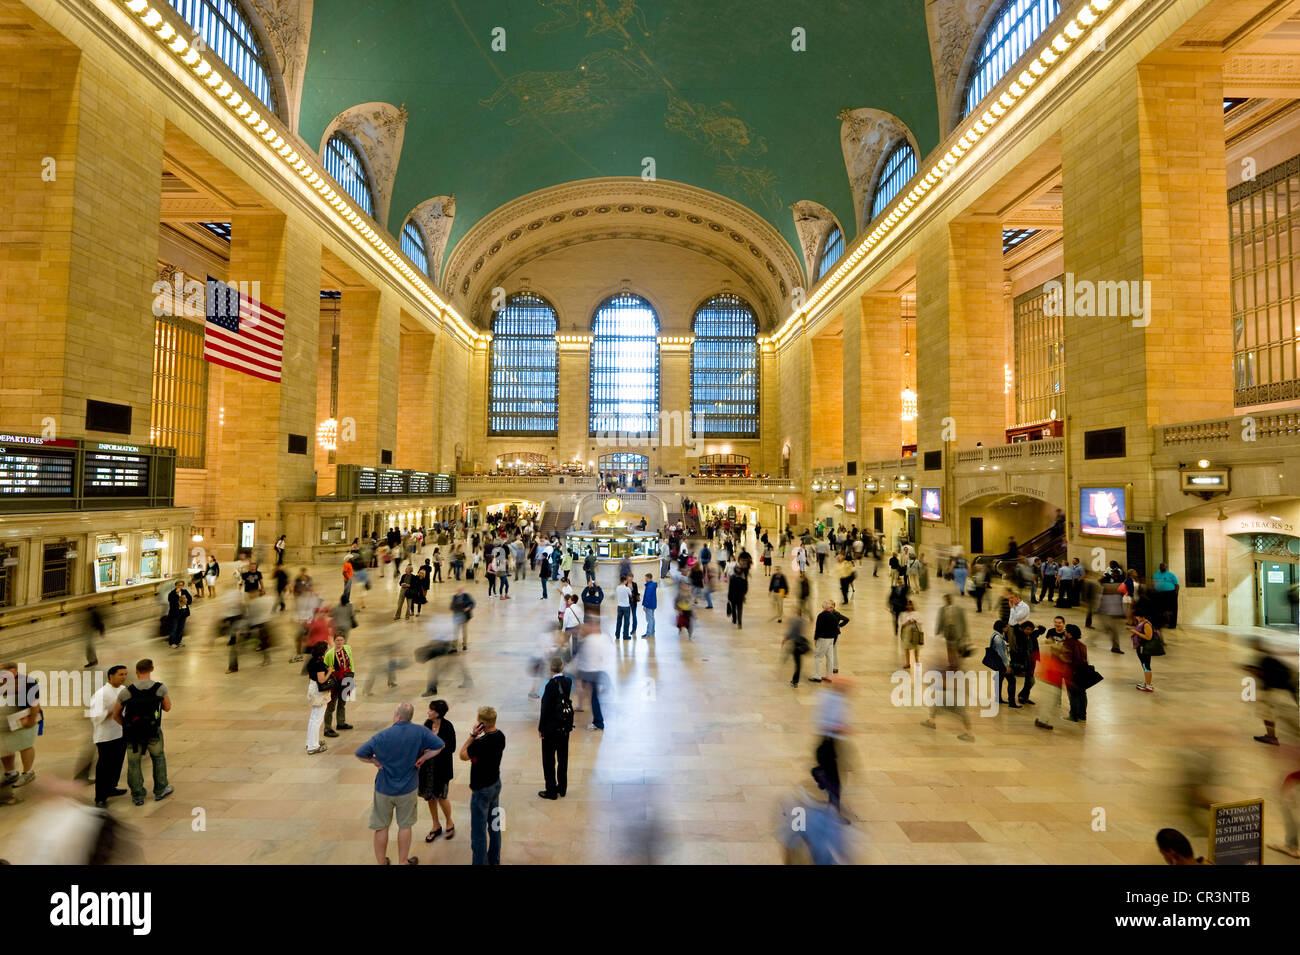 Central Station and people with motion blur, Manhattan, New York, USA, America Stock Photo